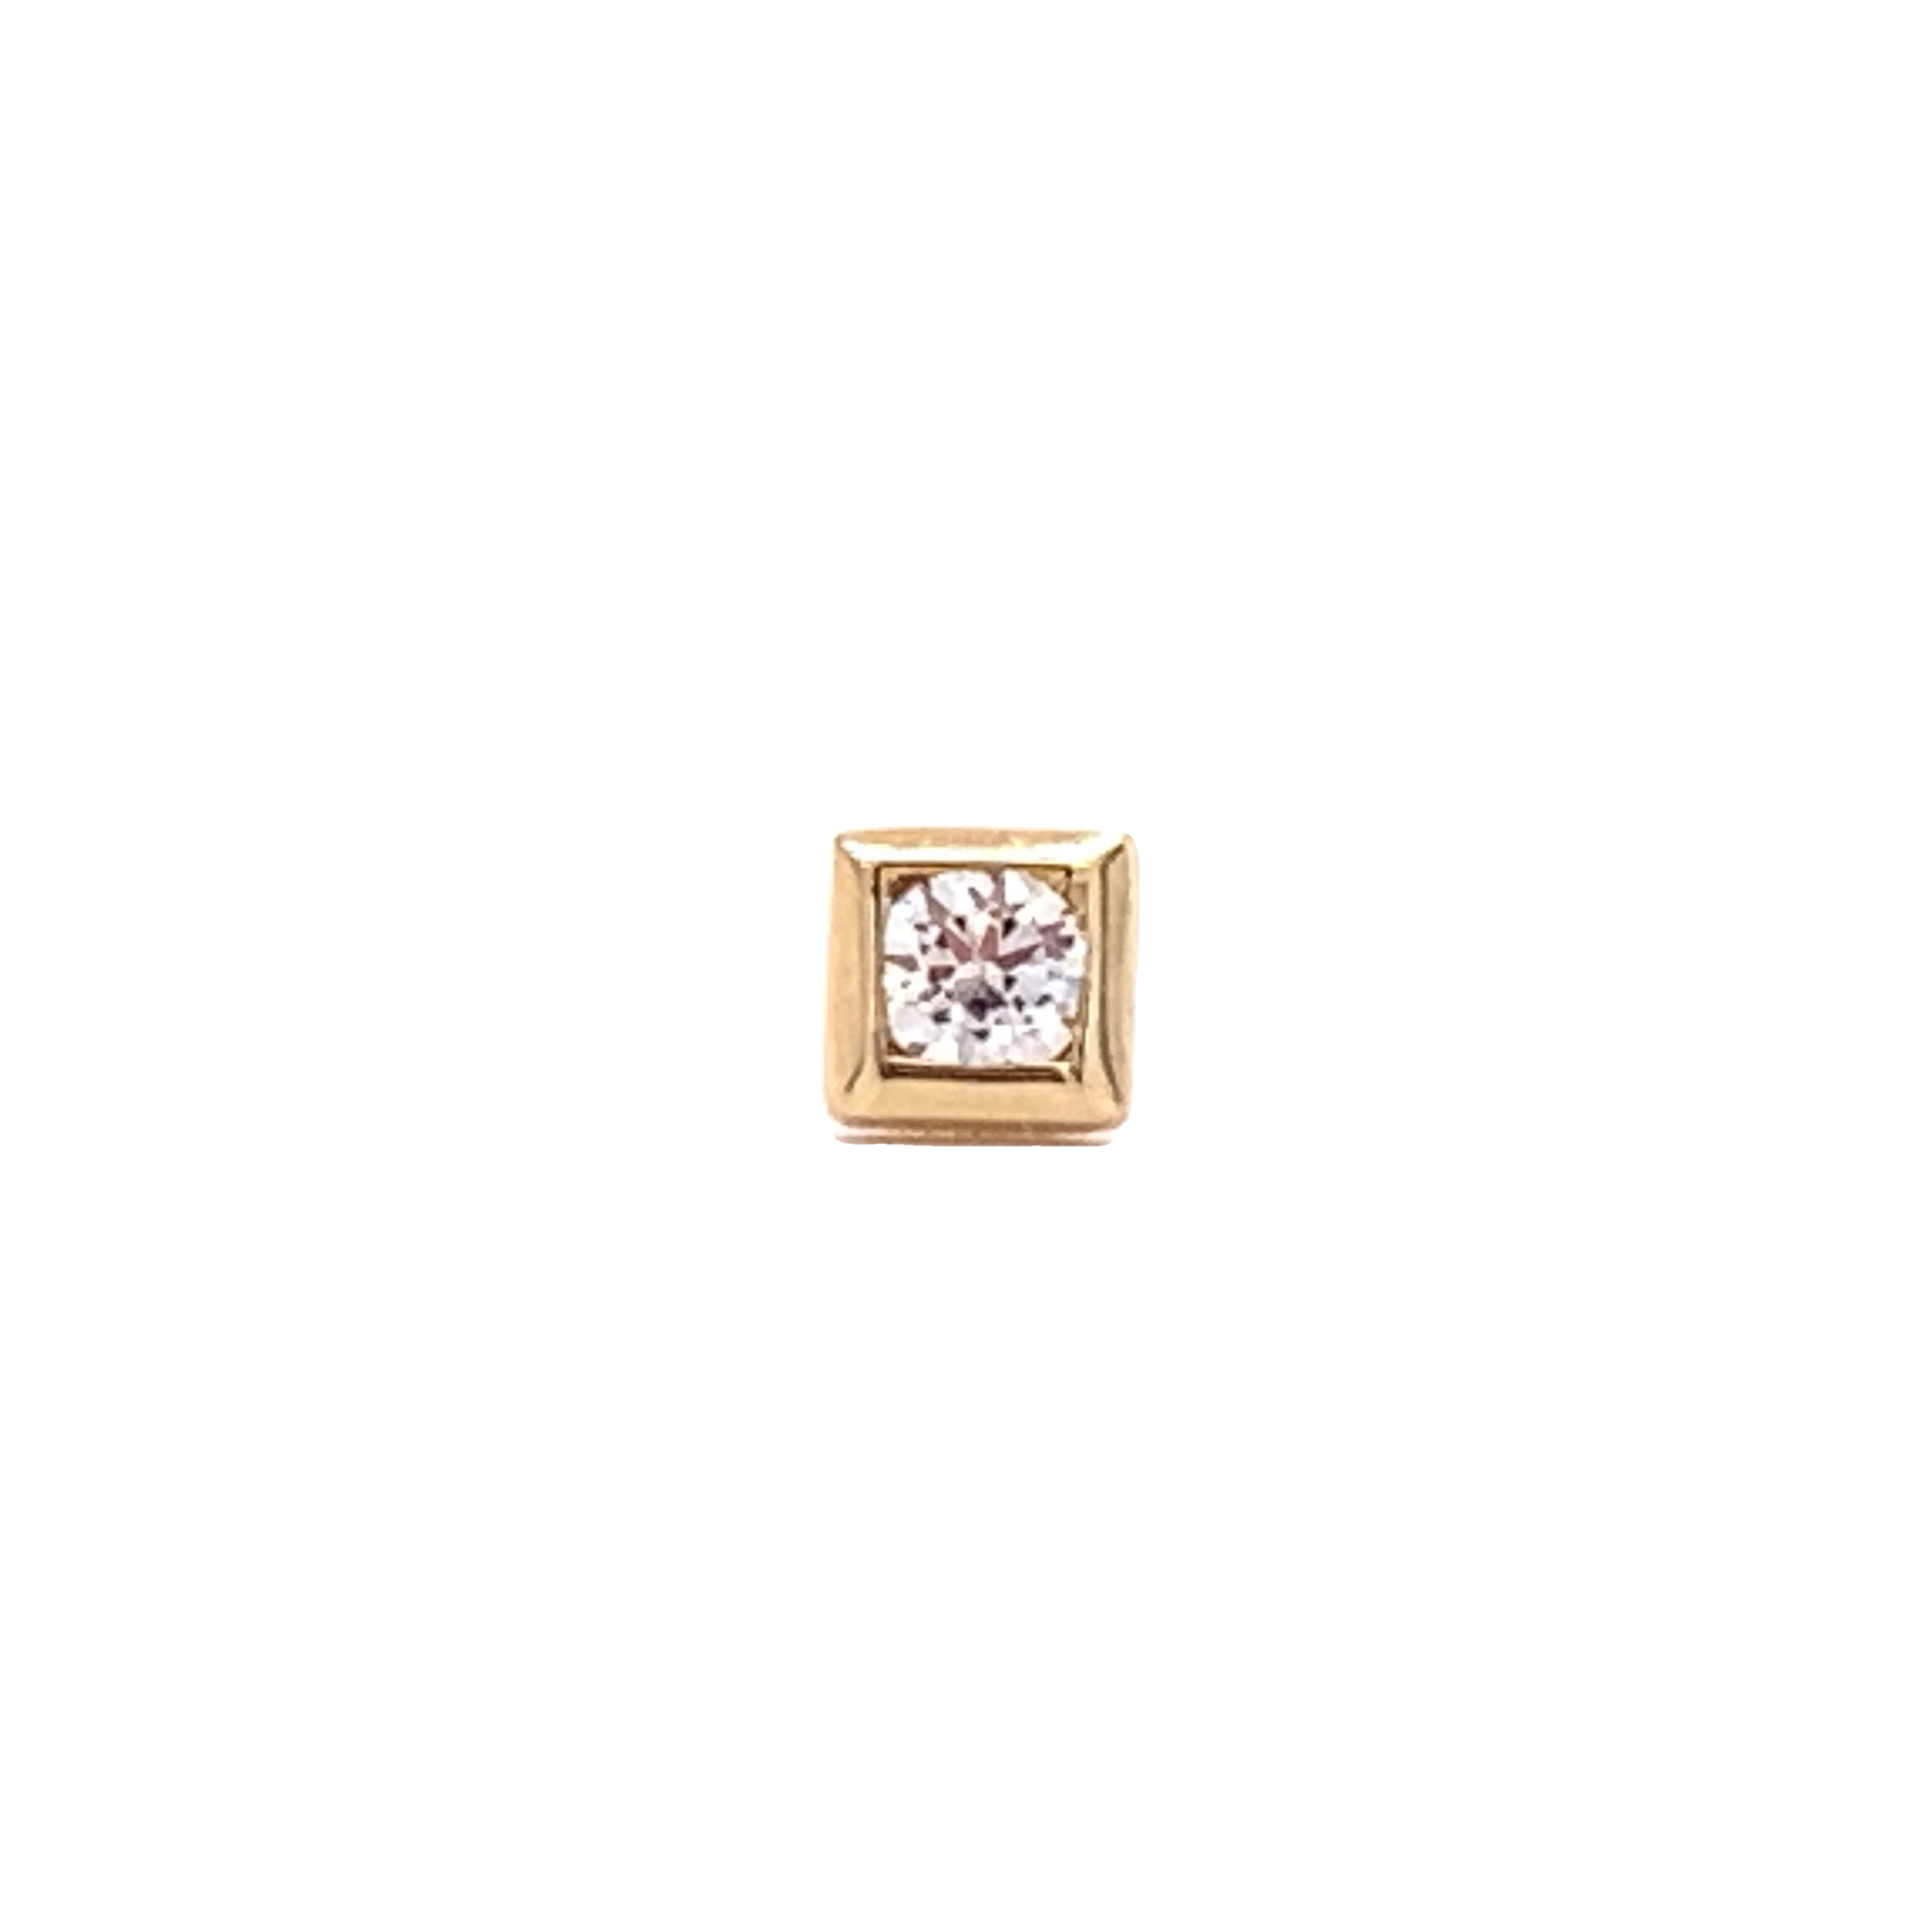 14Ct Gold Bezel-Set Cz Square Attachment